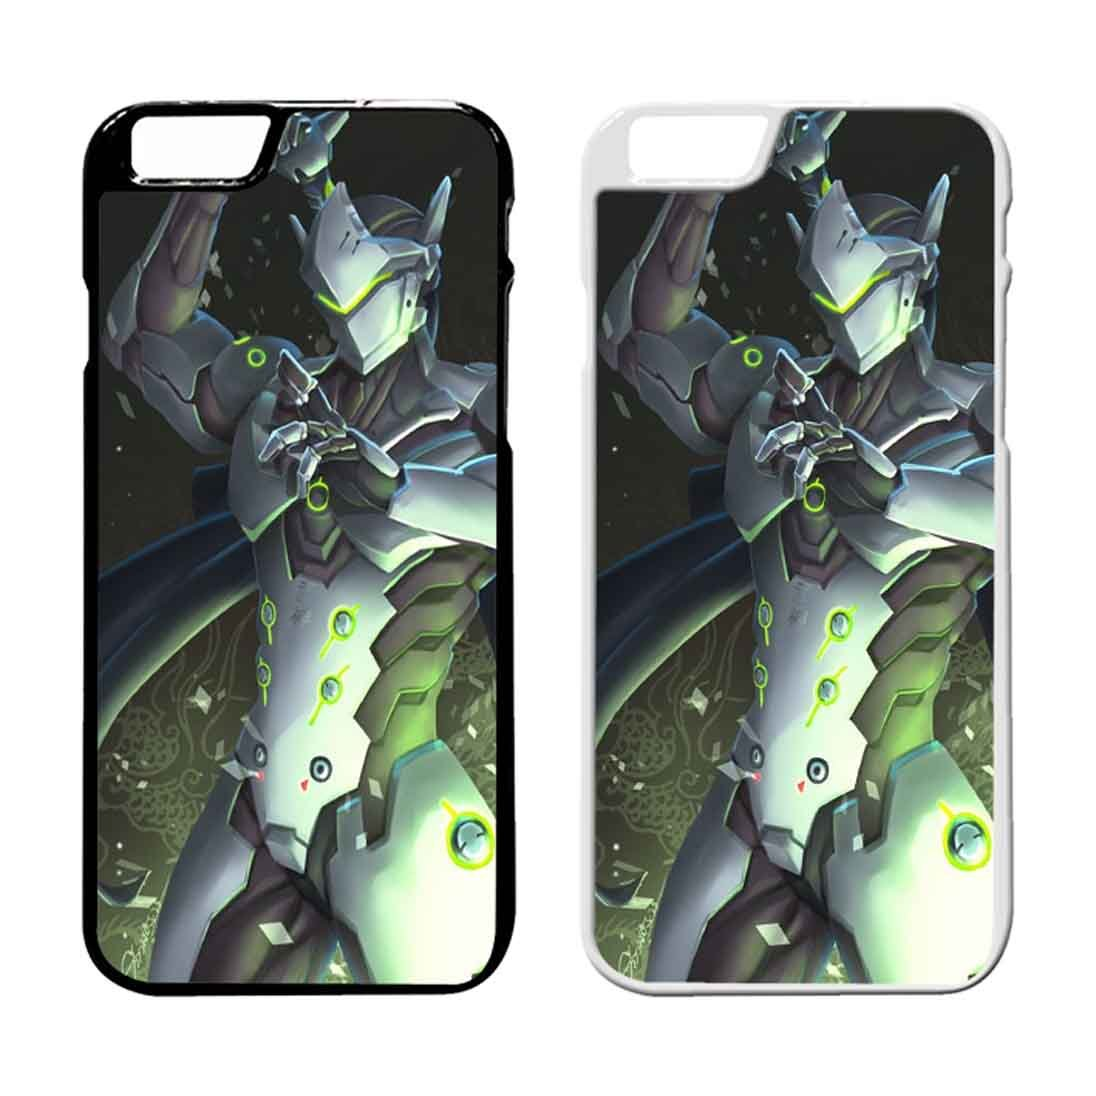 Genji Overwatch 4 Funda iPhone Case Funda iPhone 6 Plus Case ...